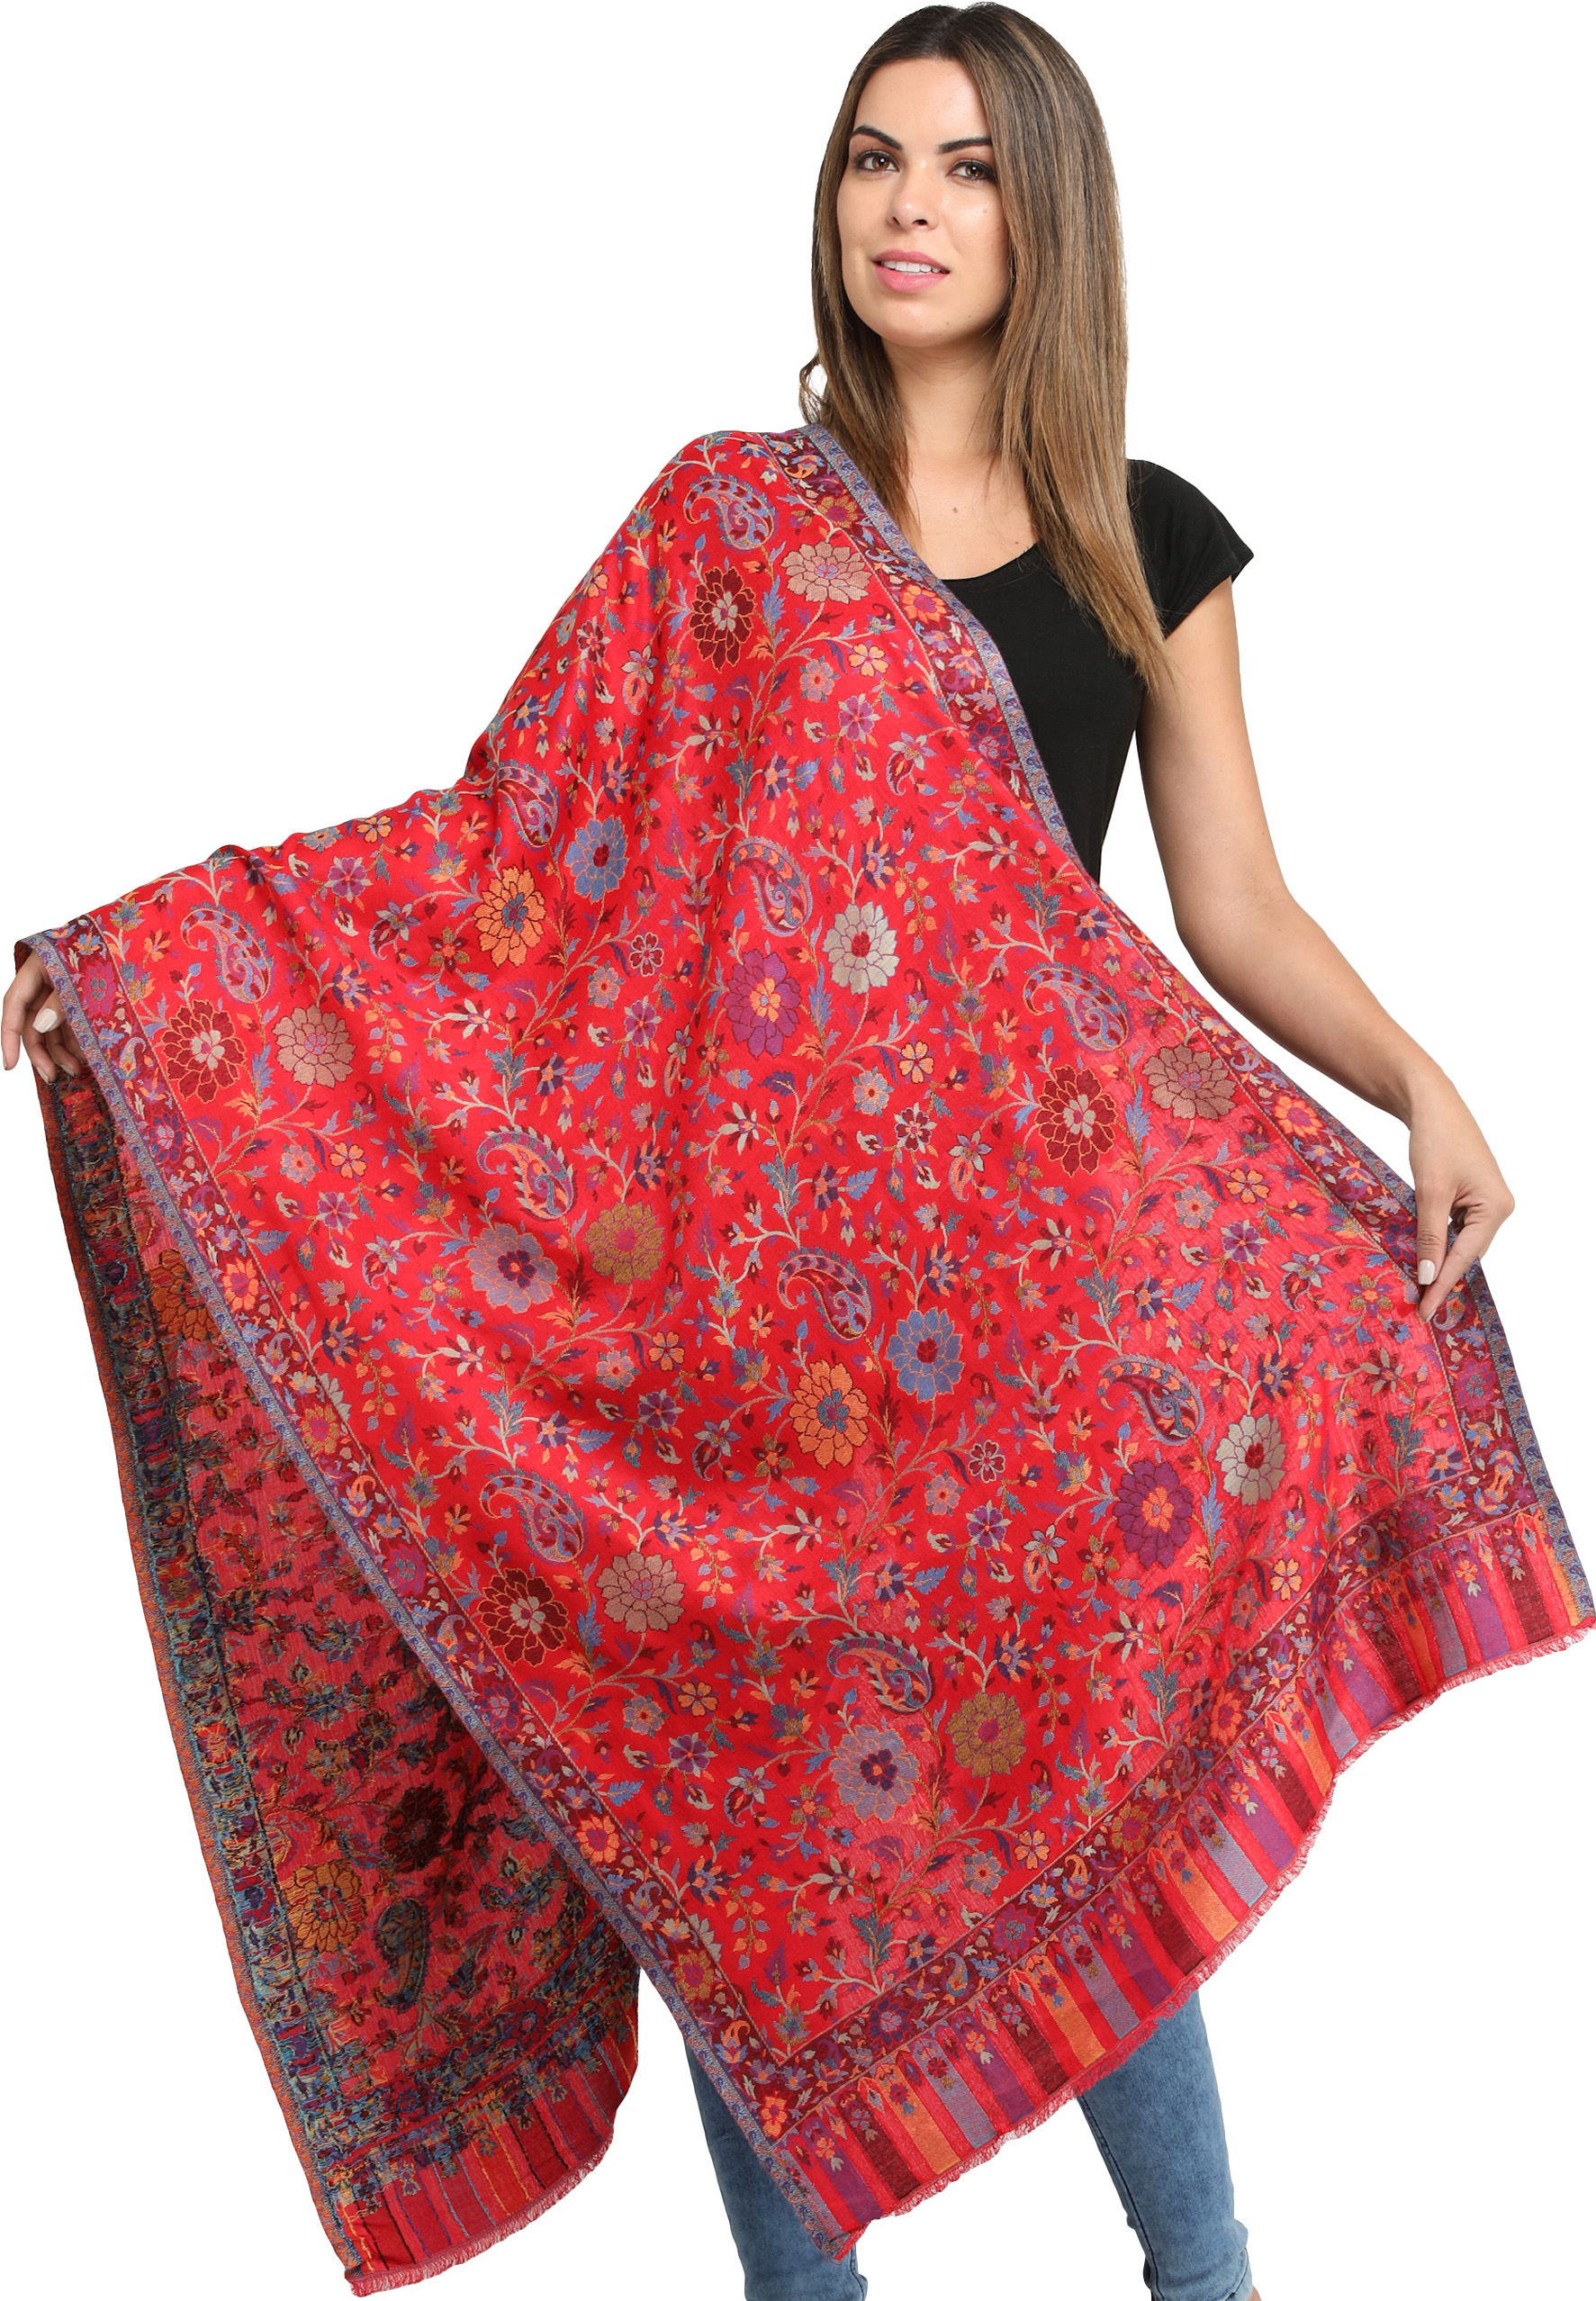 Exotic India Kani Shawl with Woven Chinar Leaves in Multi-Colored Thread